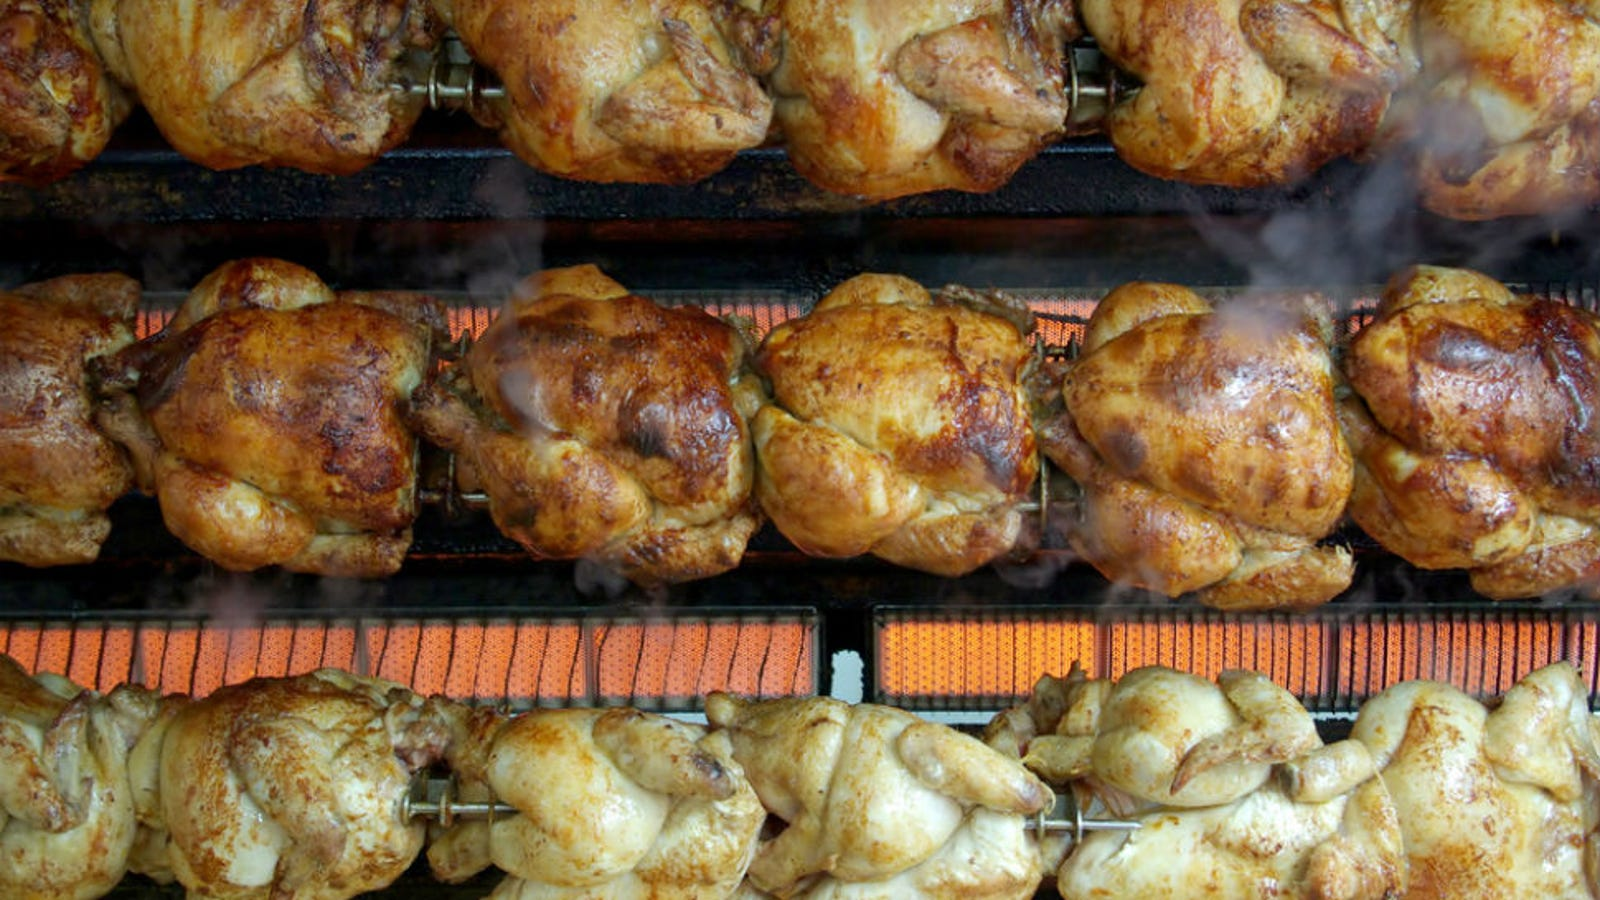 Florida Woman Used Store Policy to Get 300 Free Cooked Chickens